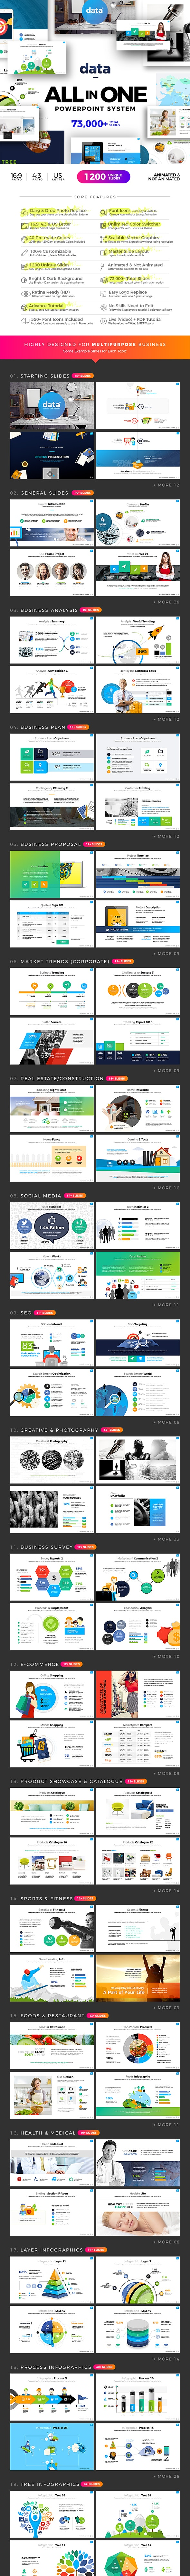 Data | Powerpoint Infographic System - Business PowerPoint Templates